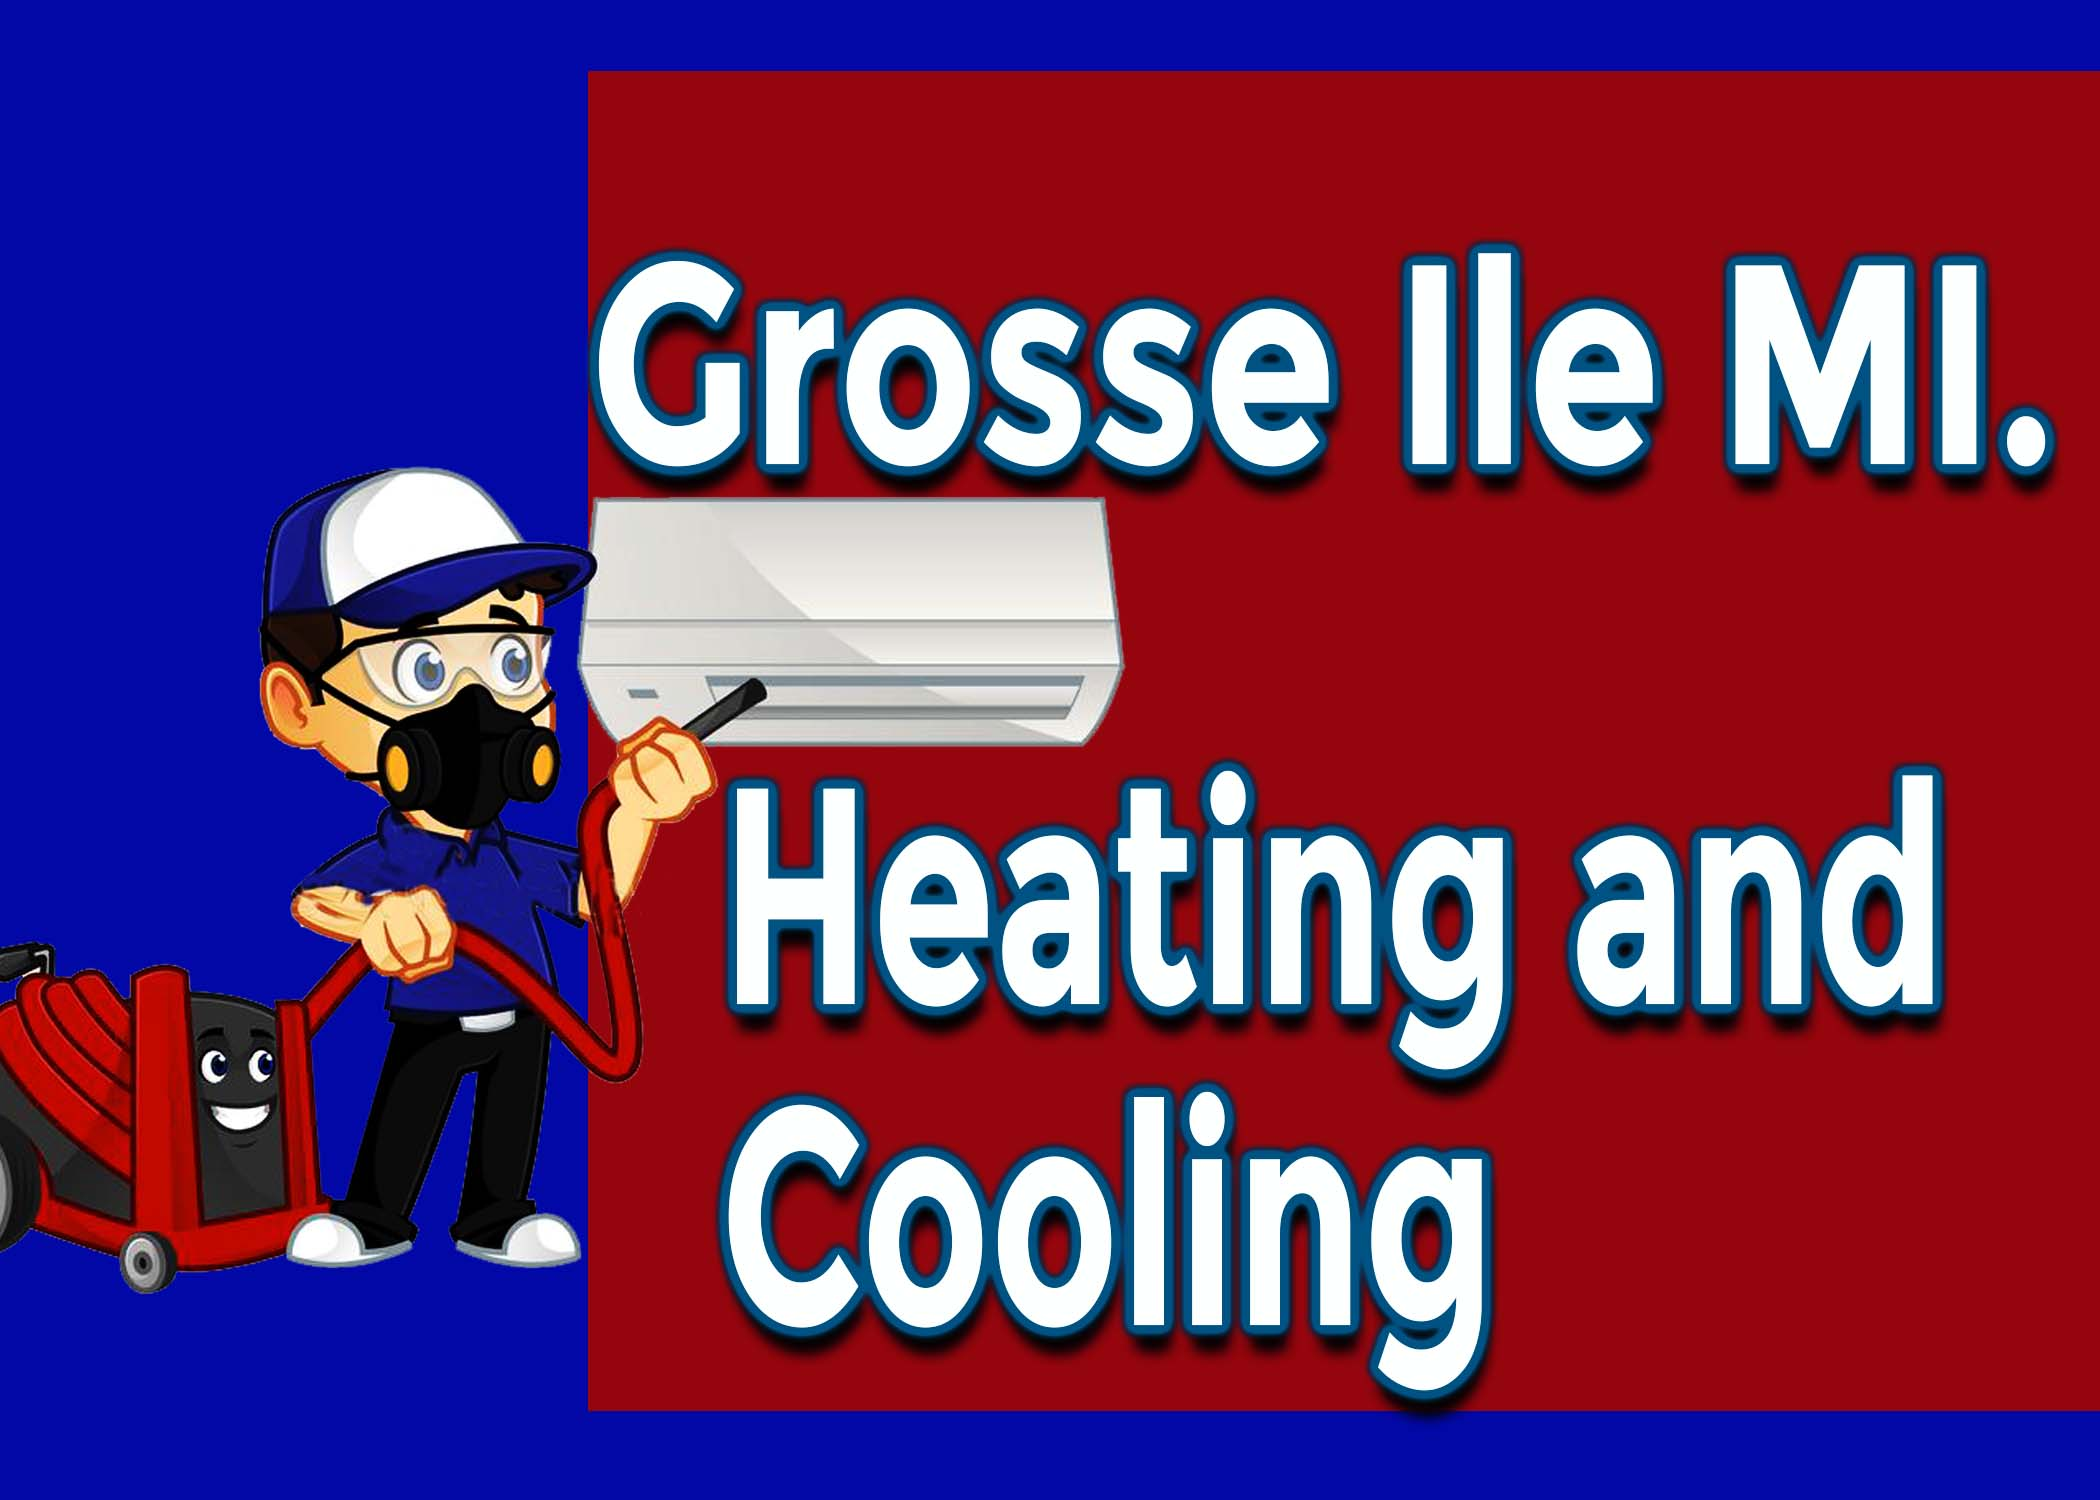 Grosse Ile MI Heating and Cooling, Essential Components for Best Performance